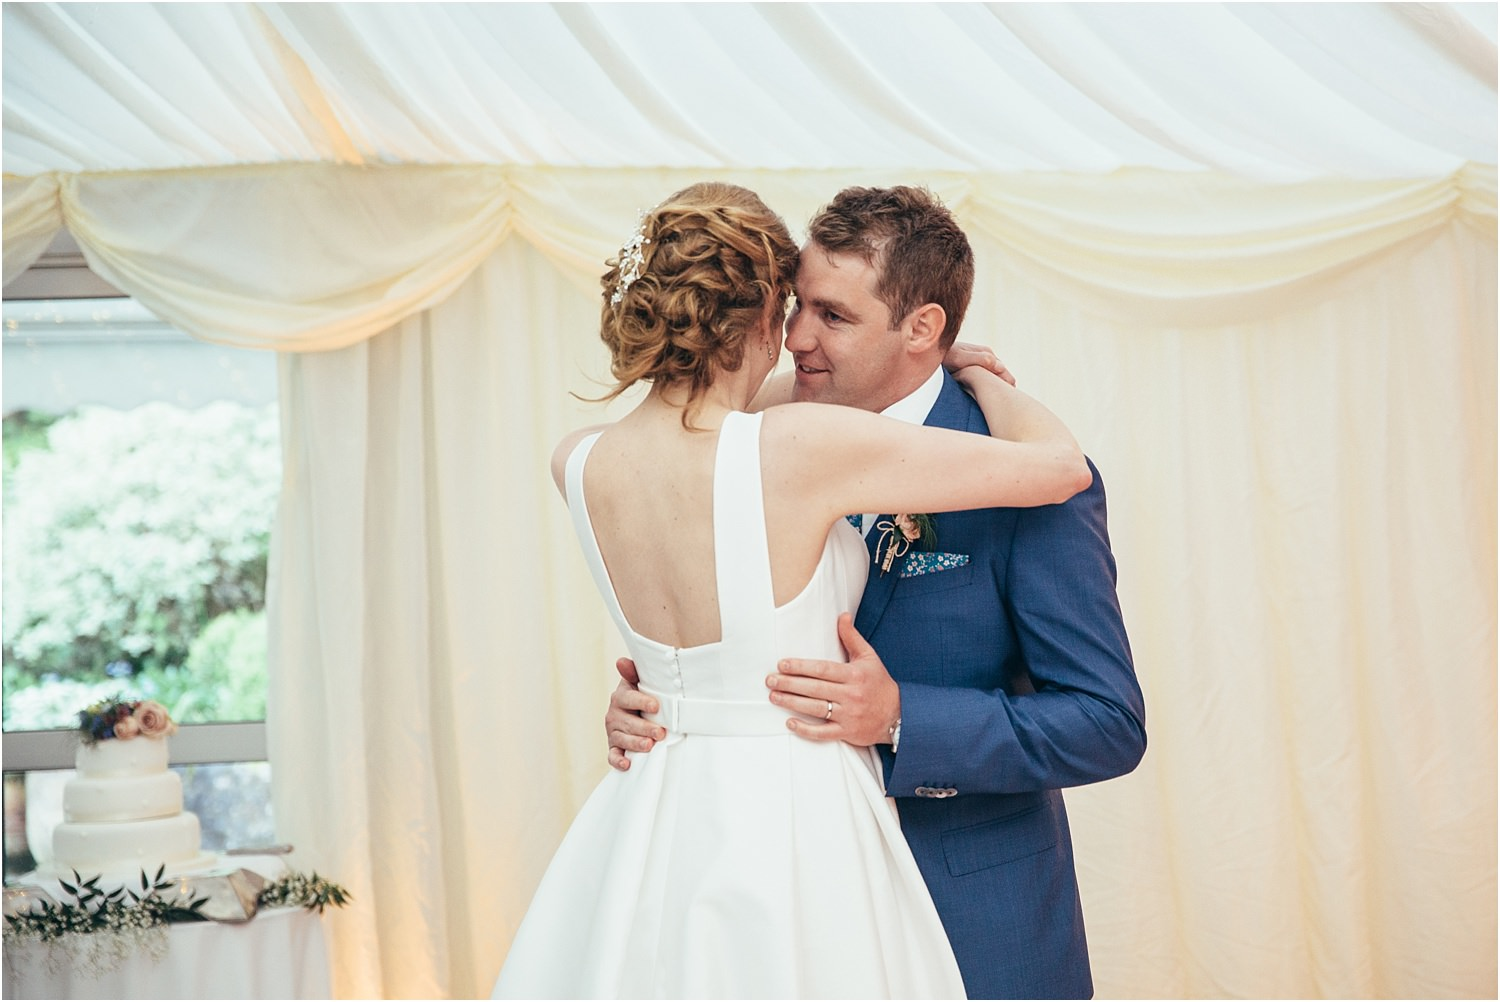 Bride and groom lovingly embrace after cutting the cake at their Inn at Whitewell wedding reception